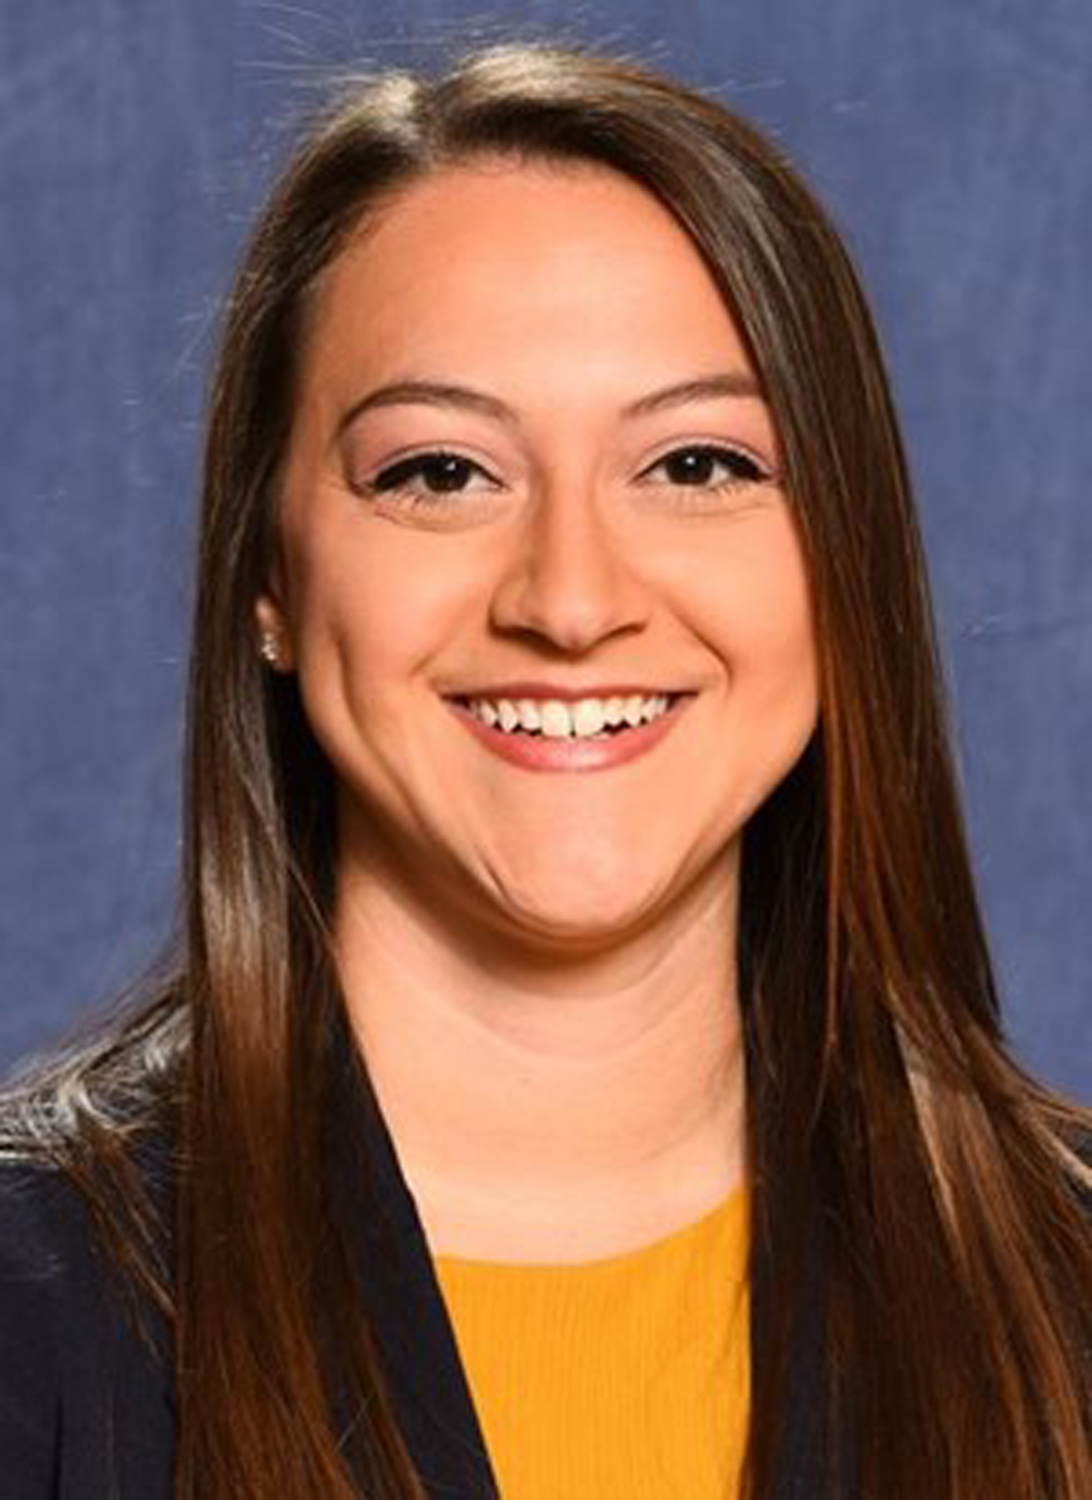 Julie Jurich, director of social media and media relations for men's soccer, wrestling and women's tennis, controls Pitt Athletics' Facebook, Twitter and Instagram accounts.